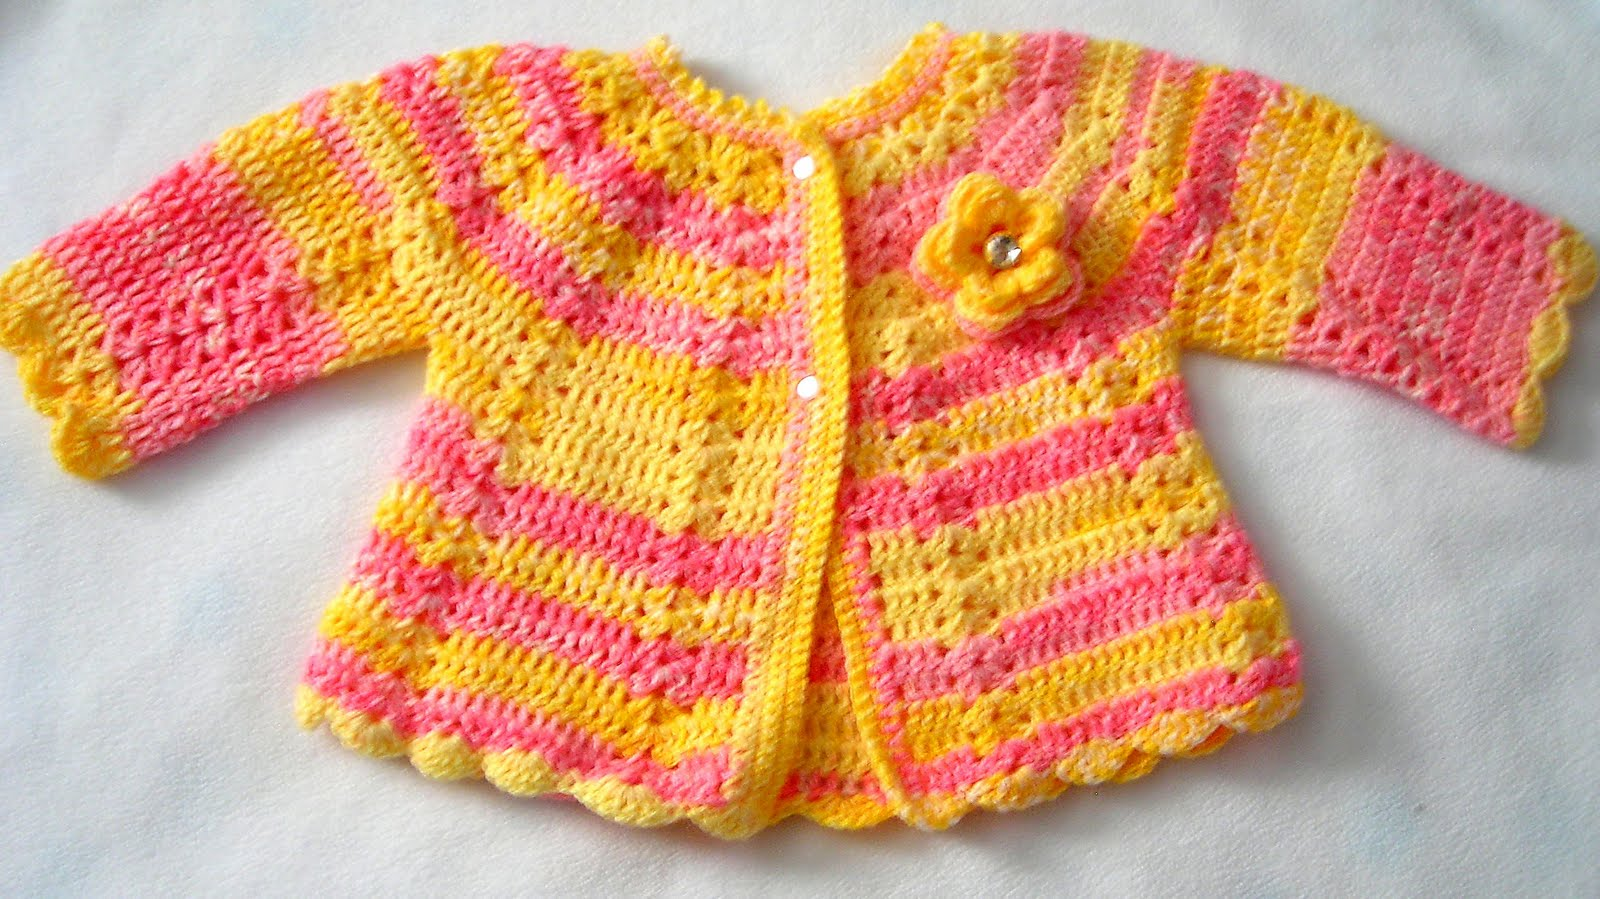 Crochet Baby Sweater : Crafts and Crocheting: Crocheted Baby Sweaters